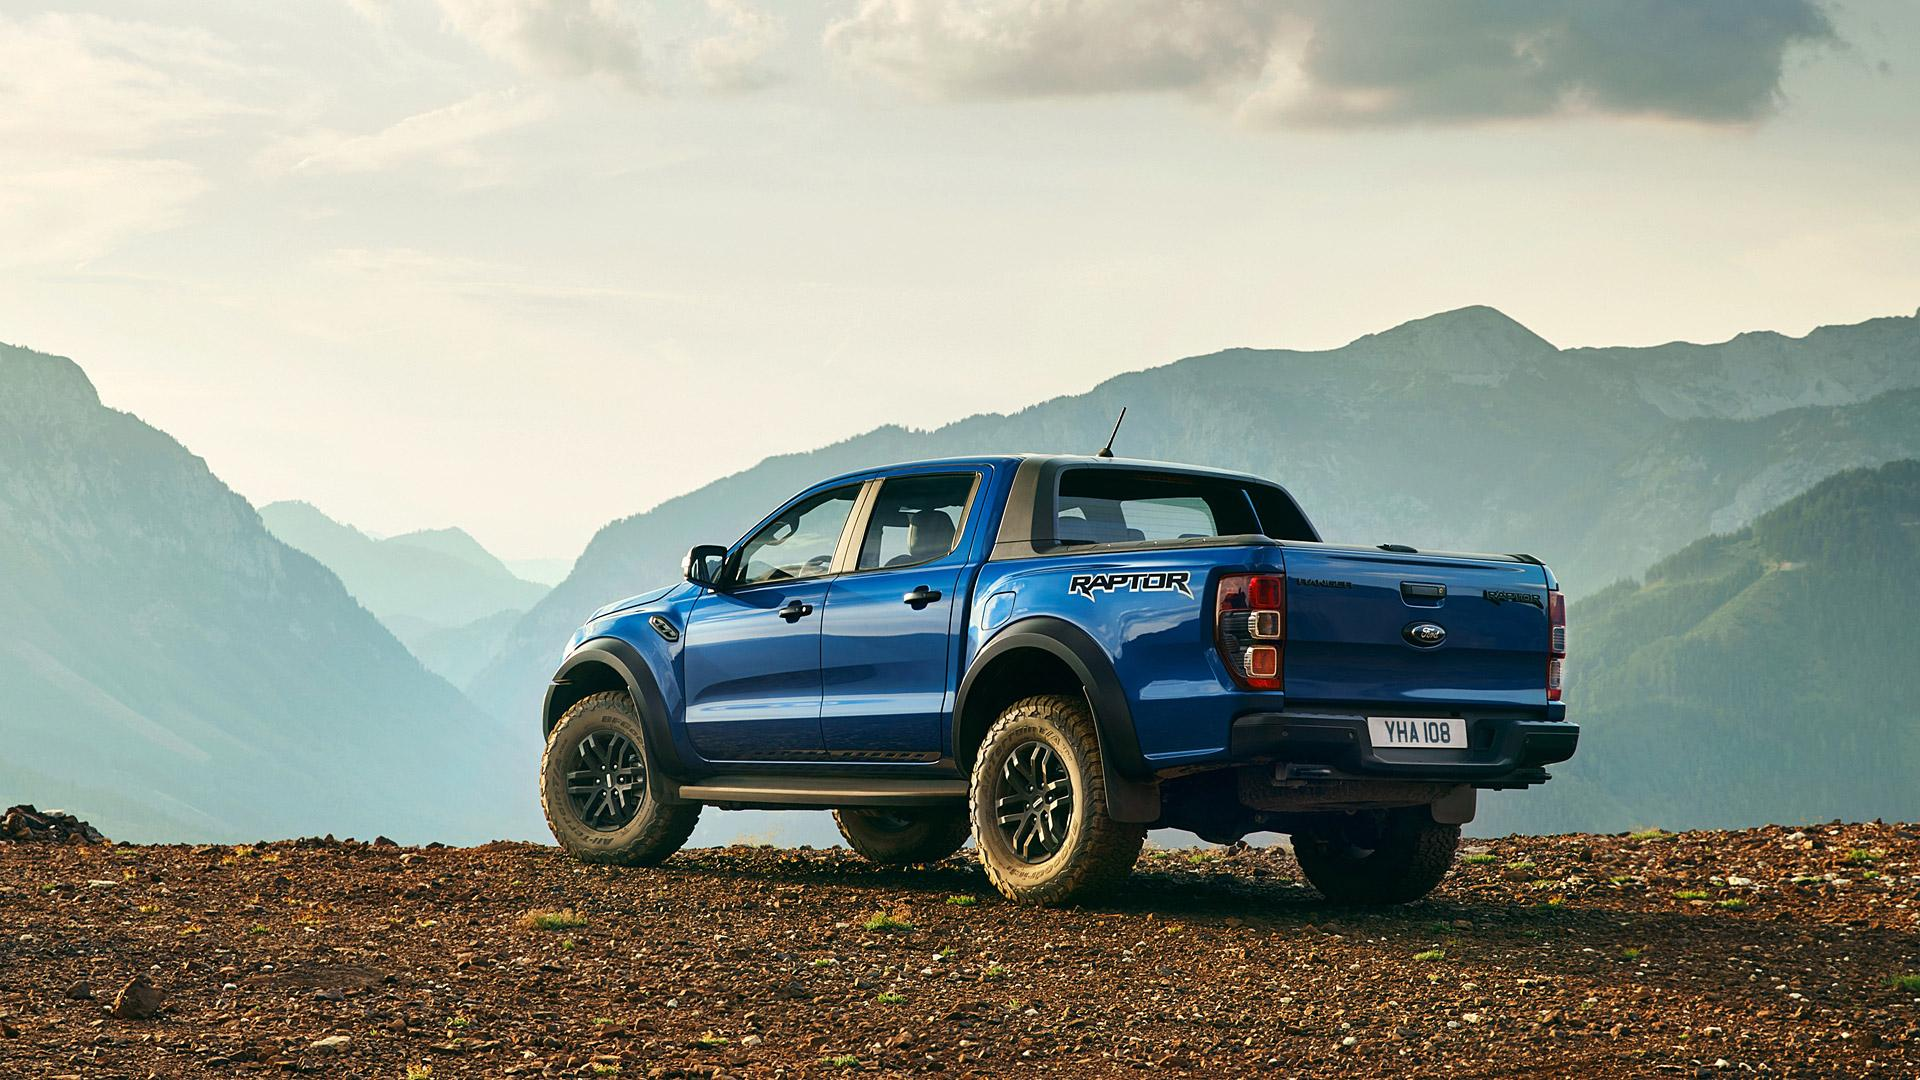 2019 Ford Ranger Raptor Wallpapers & HD Image